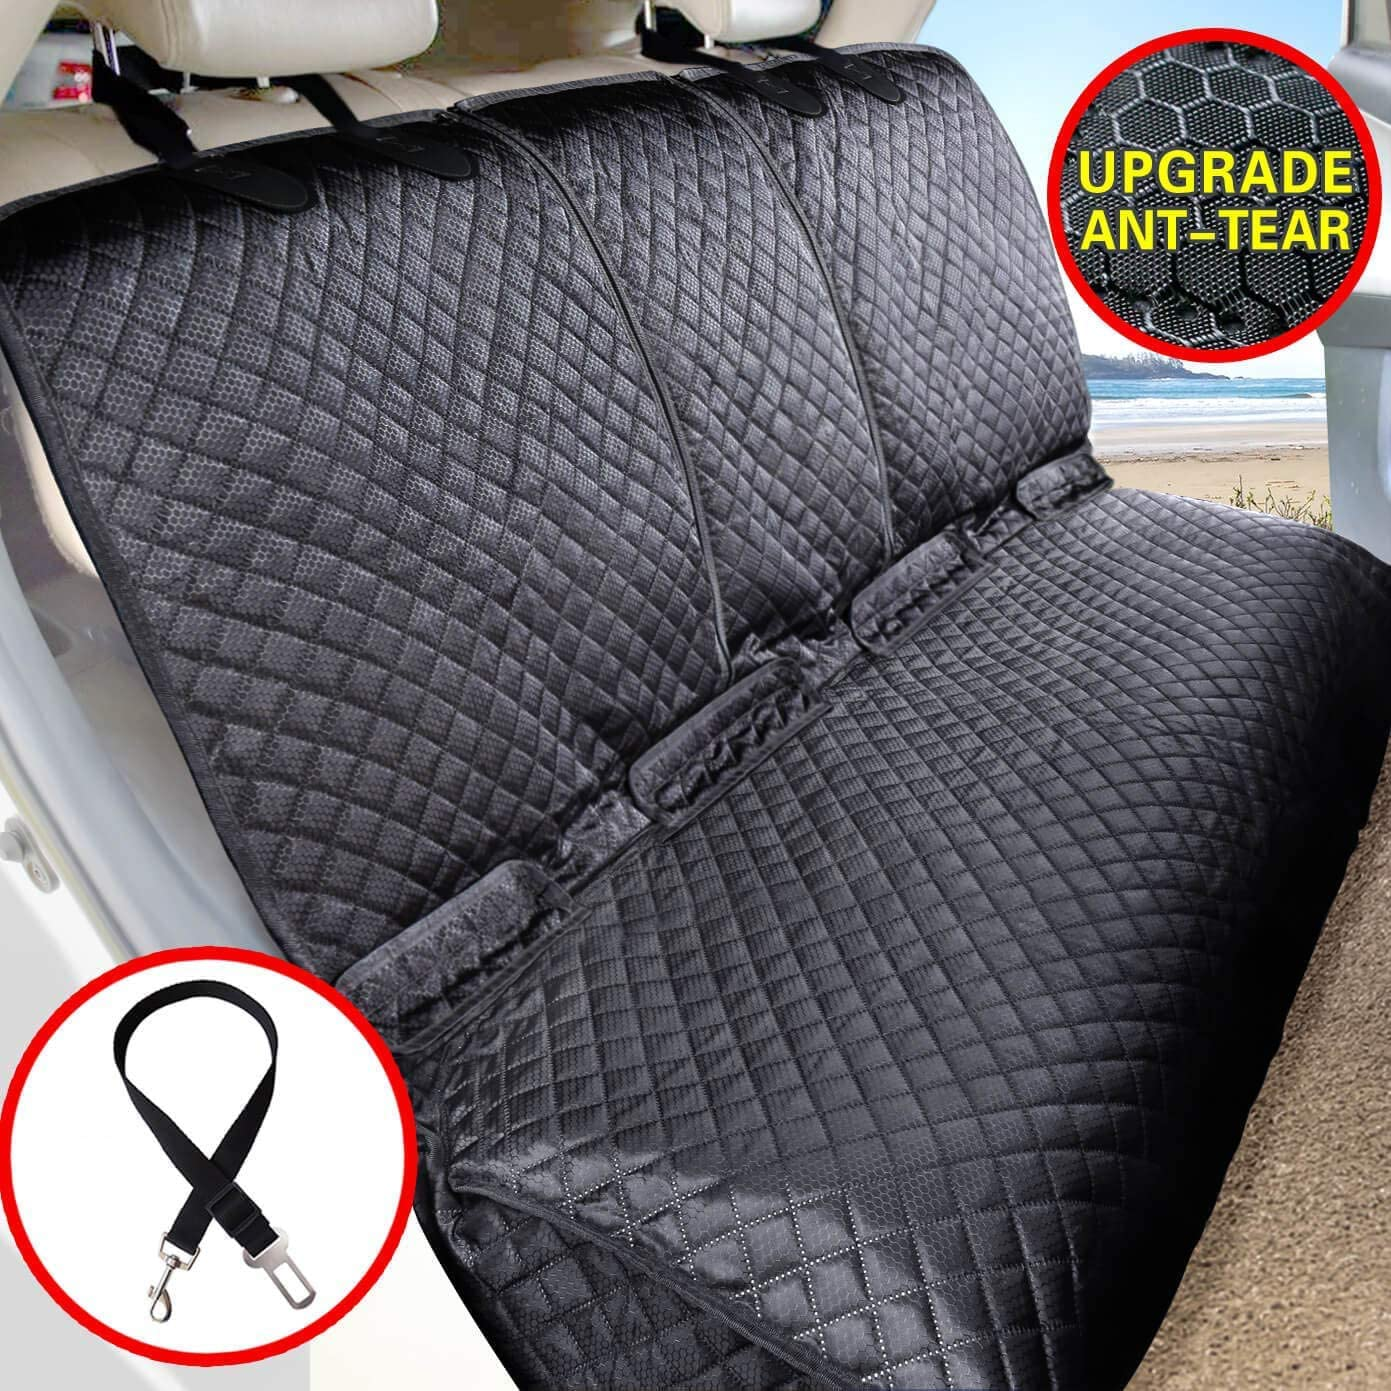 Vailge Bench Dog Car Seat Cover for Back Seat, 100 Waterproof Dog Car Seat Covers, Heavy-Duty Nonslip Back Seat Cover for Dogs,Washable Compatible Pet Car Seat Cover for Cars, Trucks SUVs